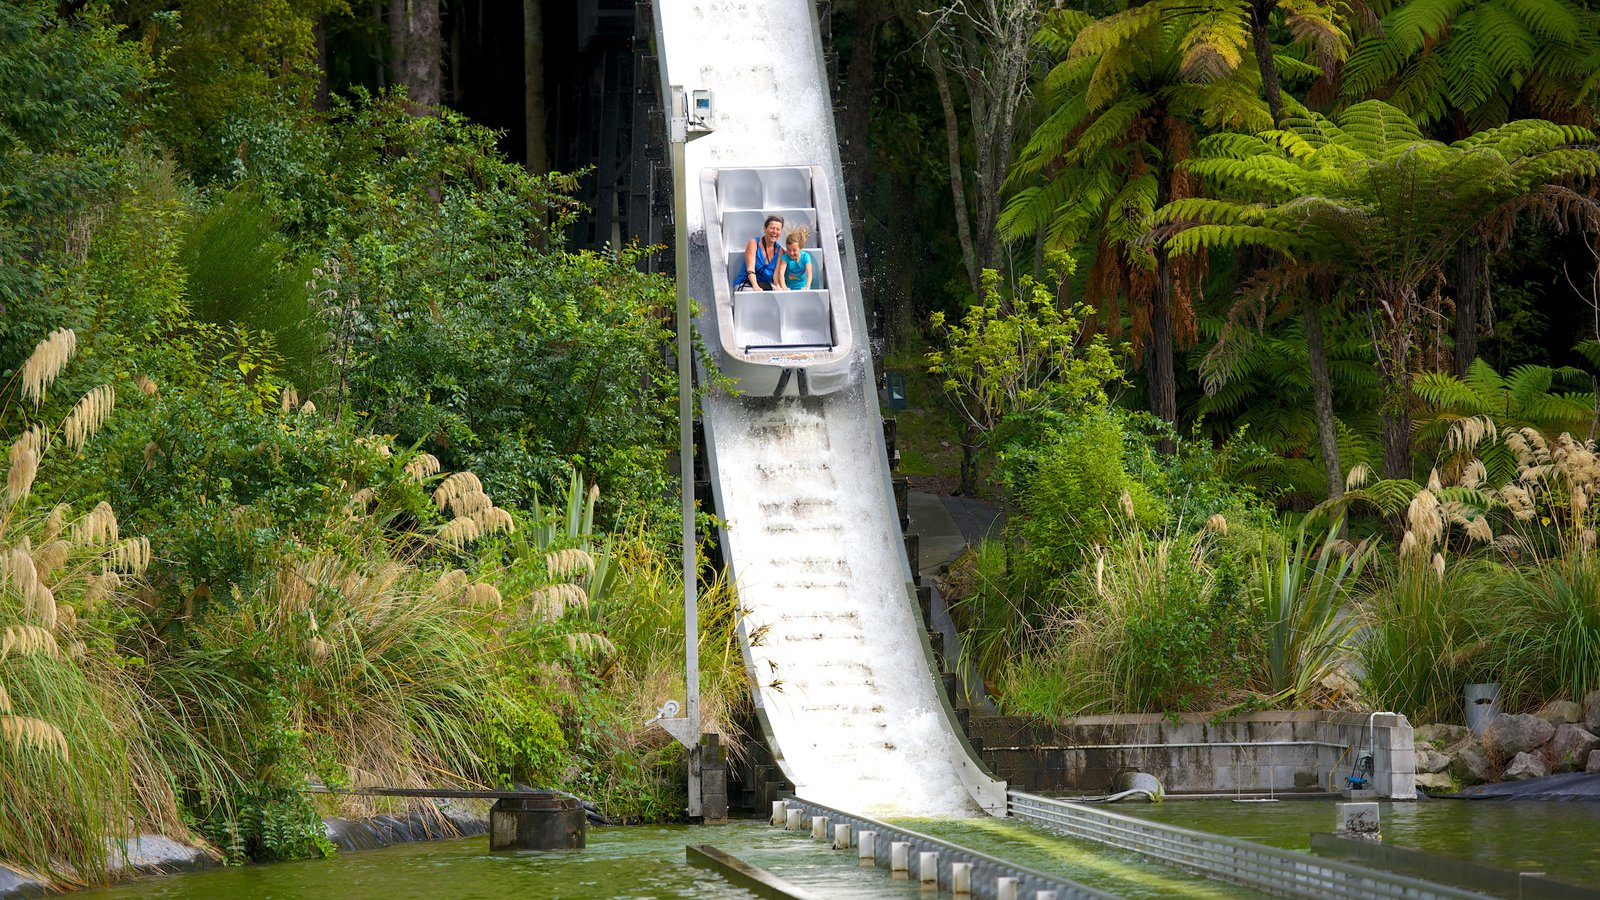 Rainbow Springs Rotorua, Attraction Pictures: View Images of Rainbow Springs Kiwi Wildlife Park